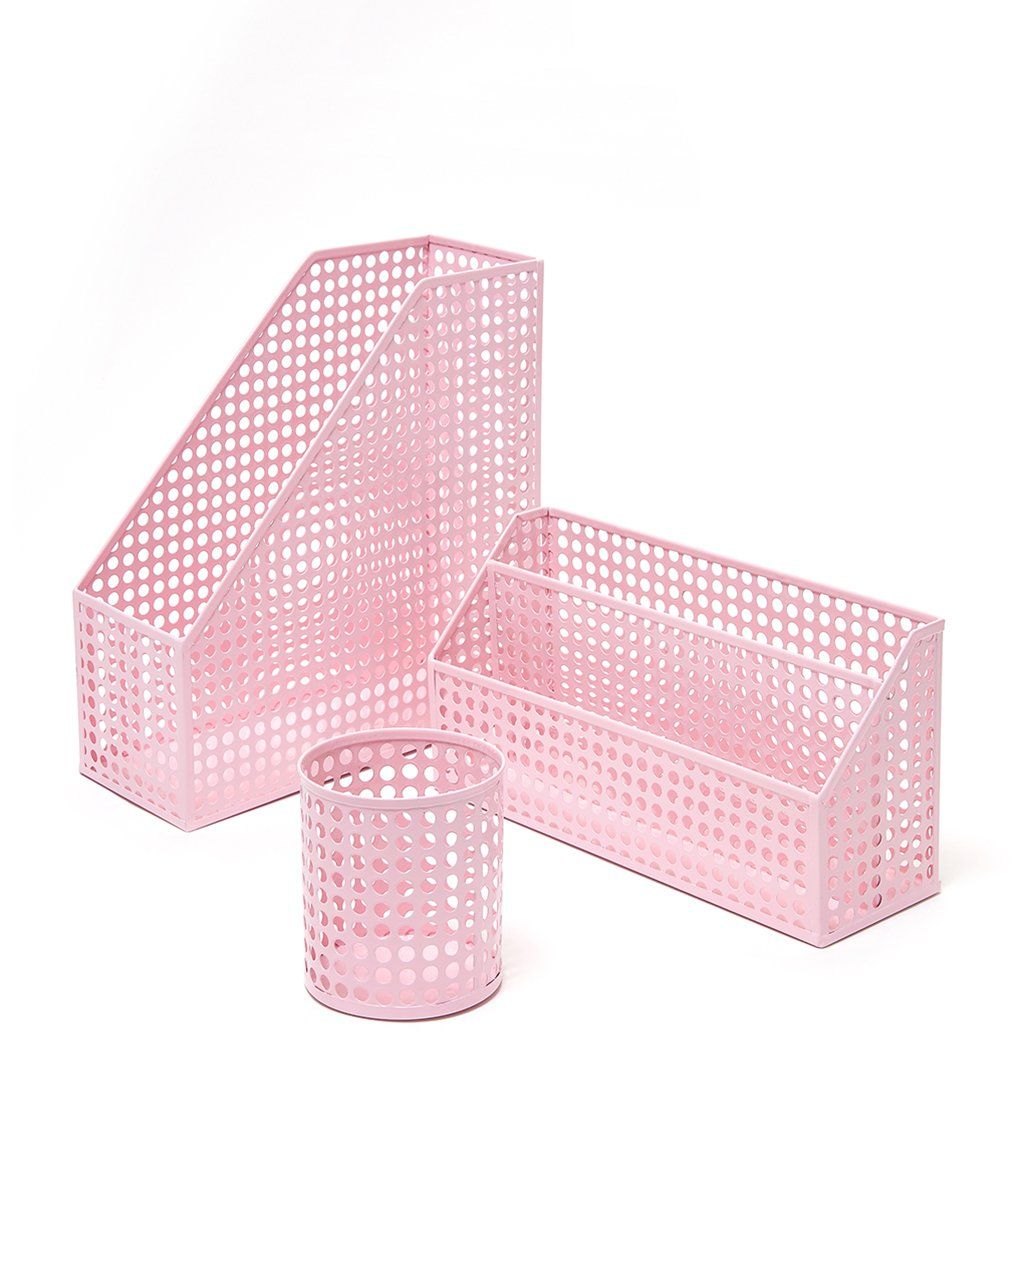 Pink Desk Accessories Bundle From Ban.do